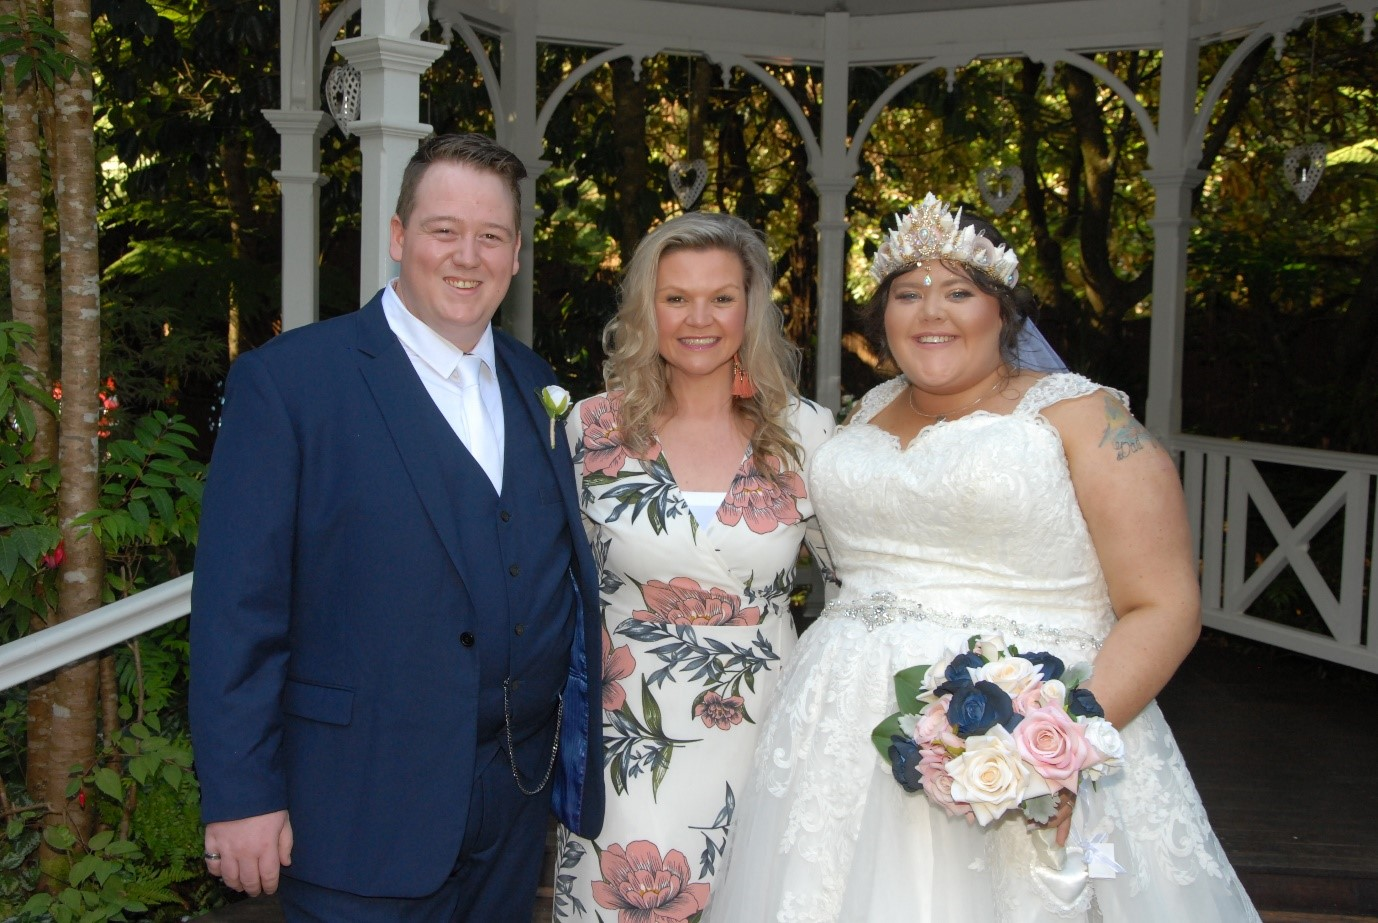 Dandenong Ranges Celebrant - Sara and Kyle's Wedding at Lyrebird Falls